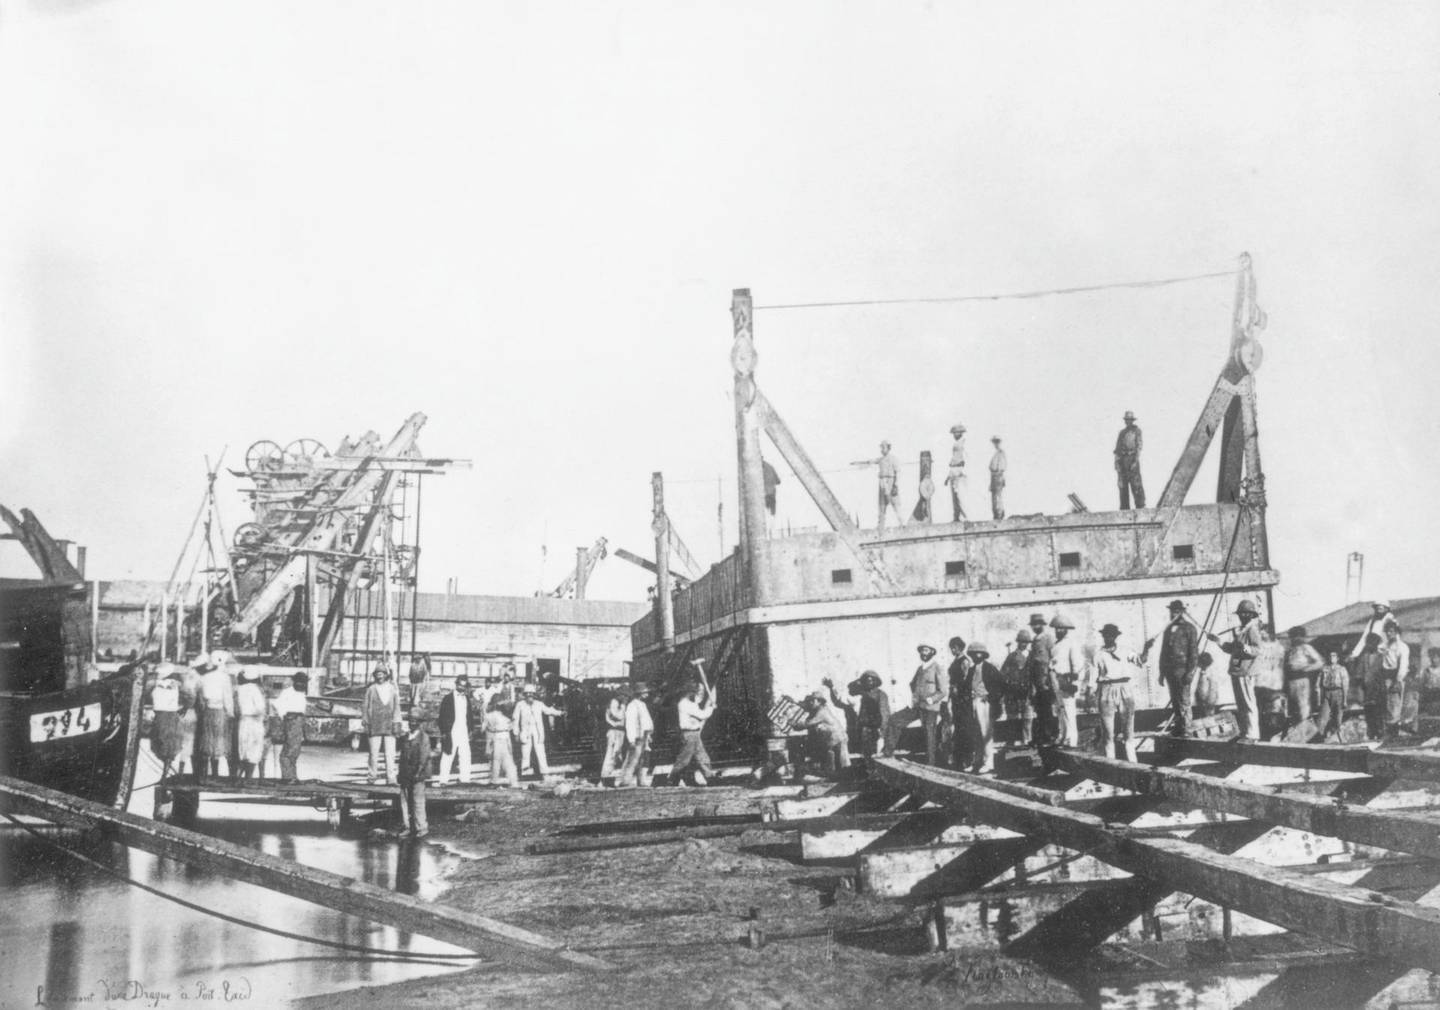 circa 1865:  Workers operating dredging equipment during the construction of the Suez Canal at Port Said.  (Photo by General Photographic Agency/Getty Images)